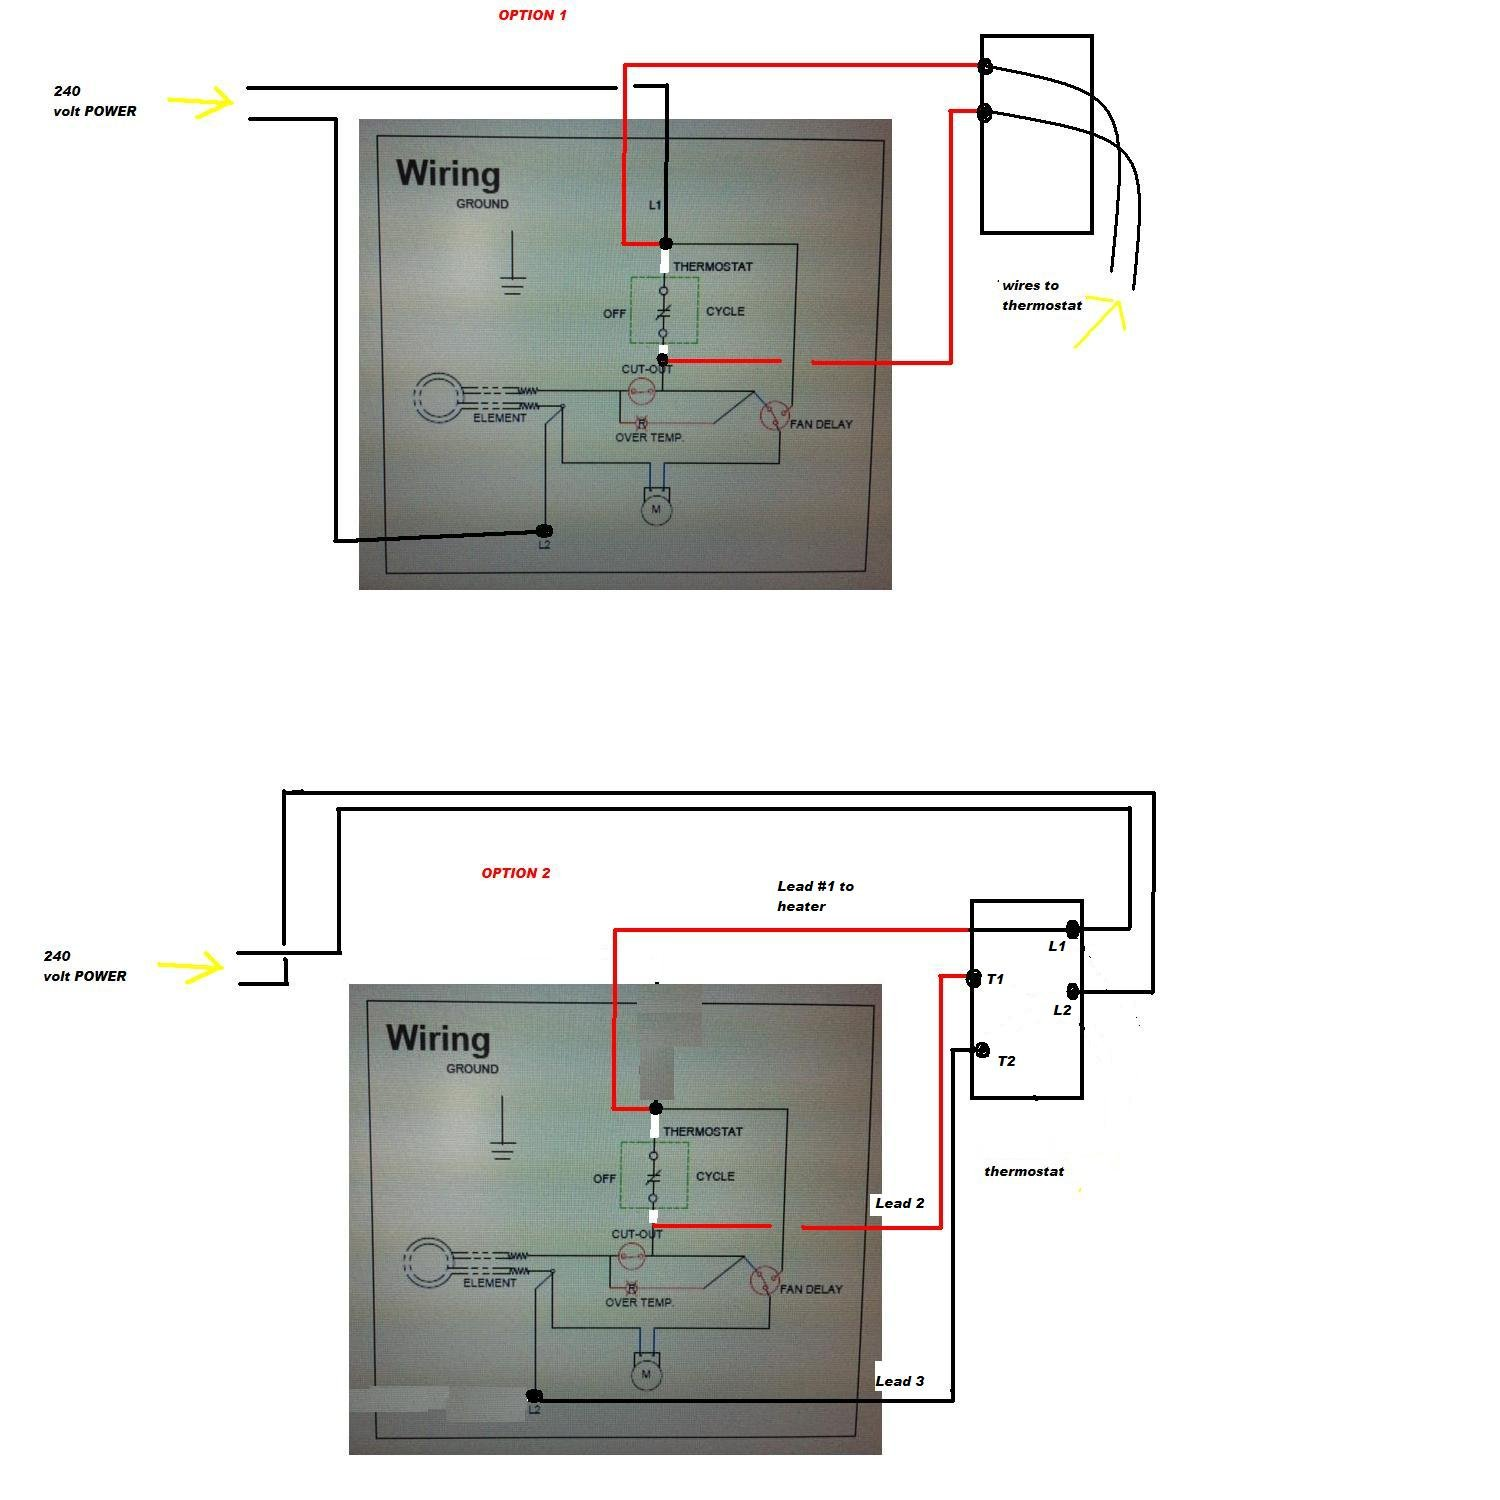 Diagram 2wire Thermostat Baseboard Wiring Diagram Full Version Hd Quality Wiring Diagram Diagramcolbyt Portaimprese It